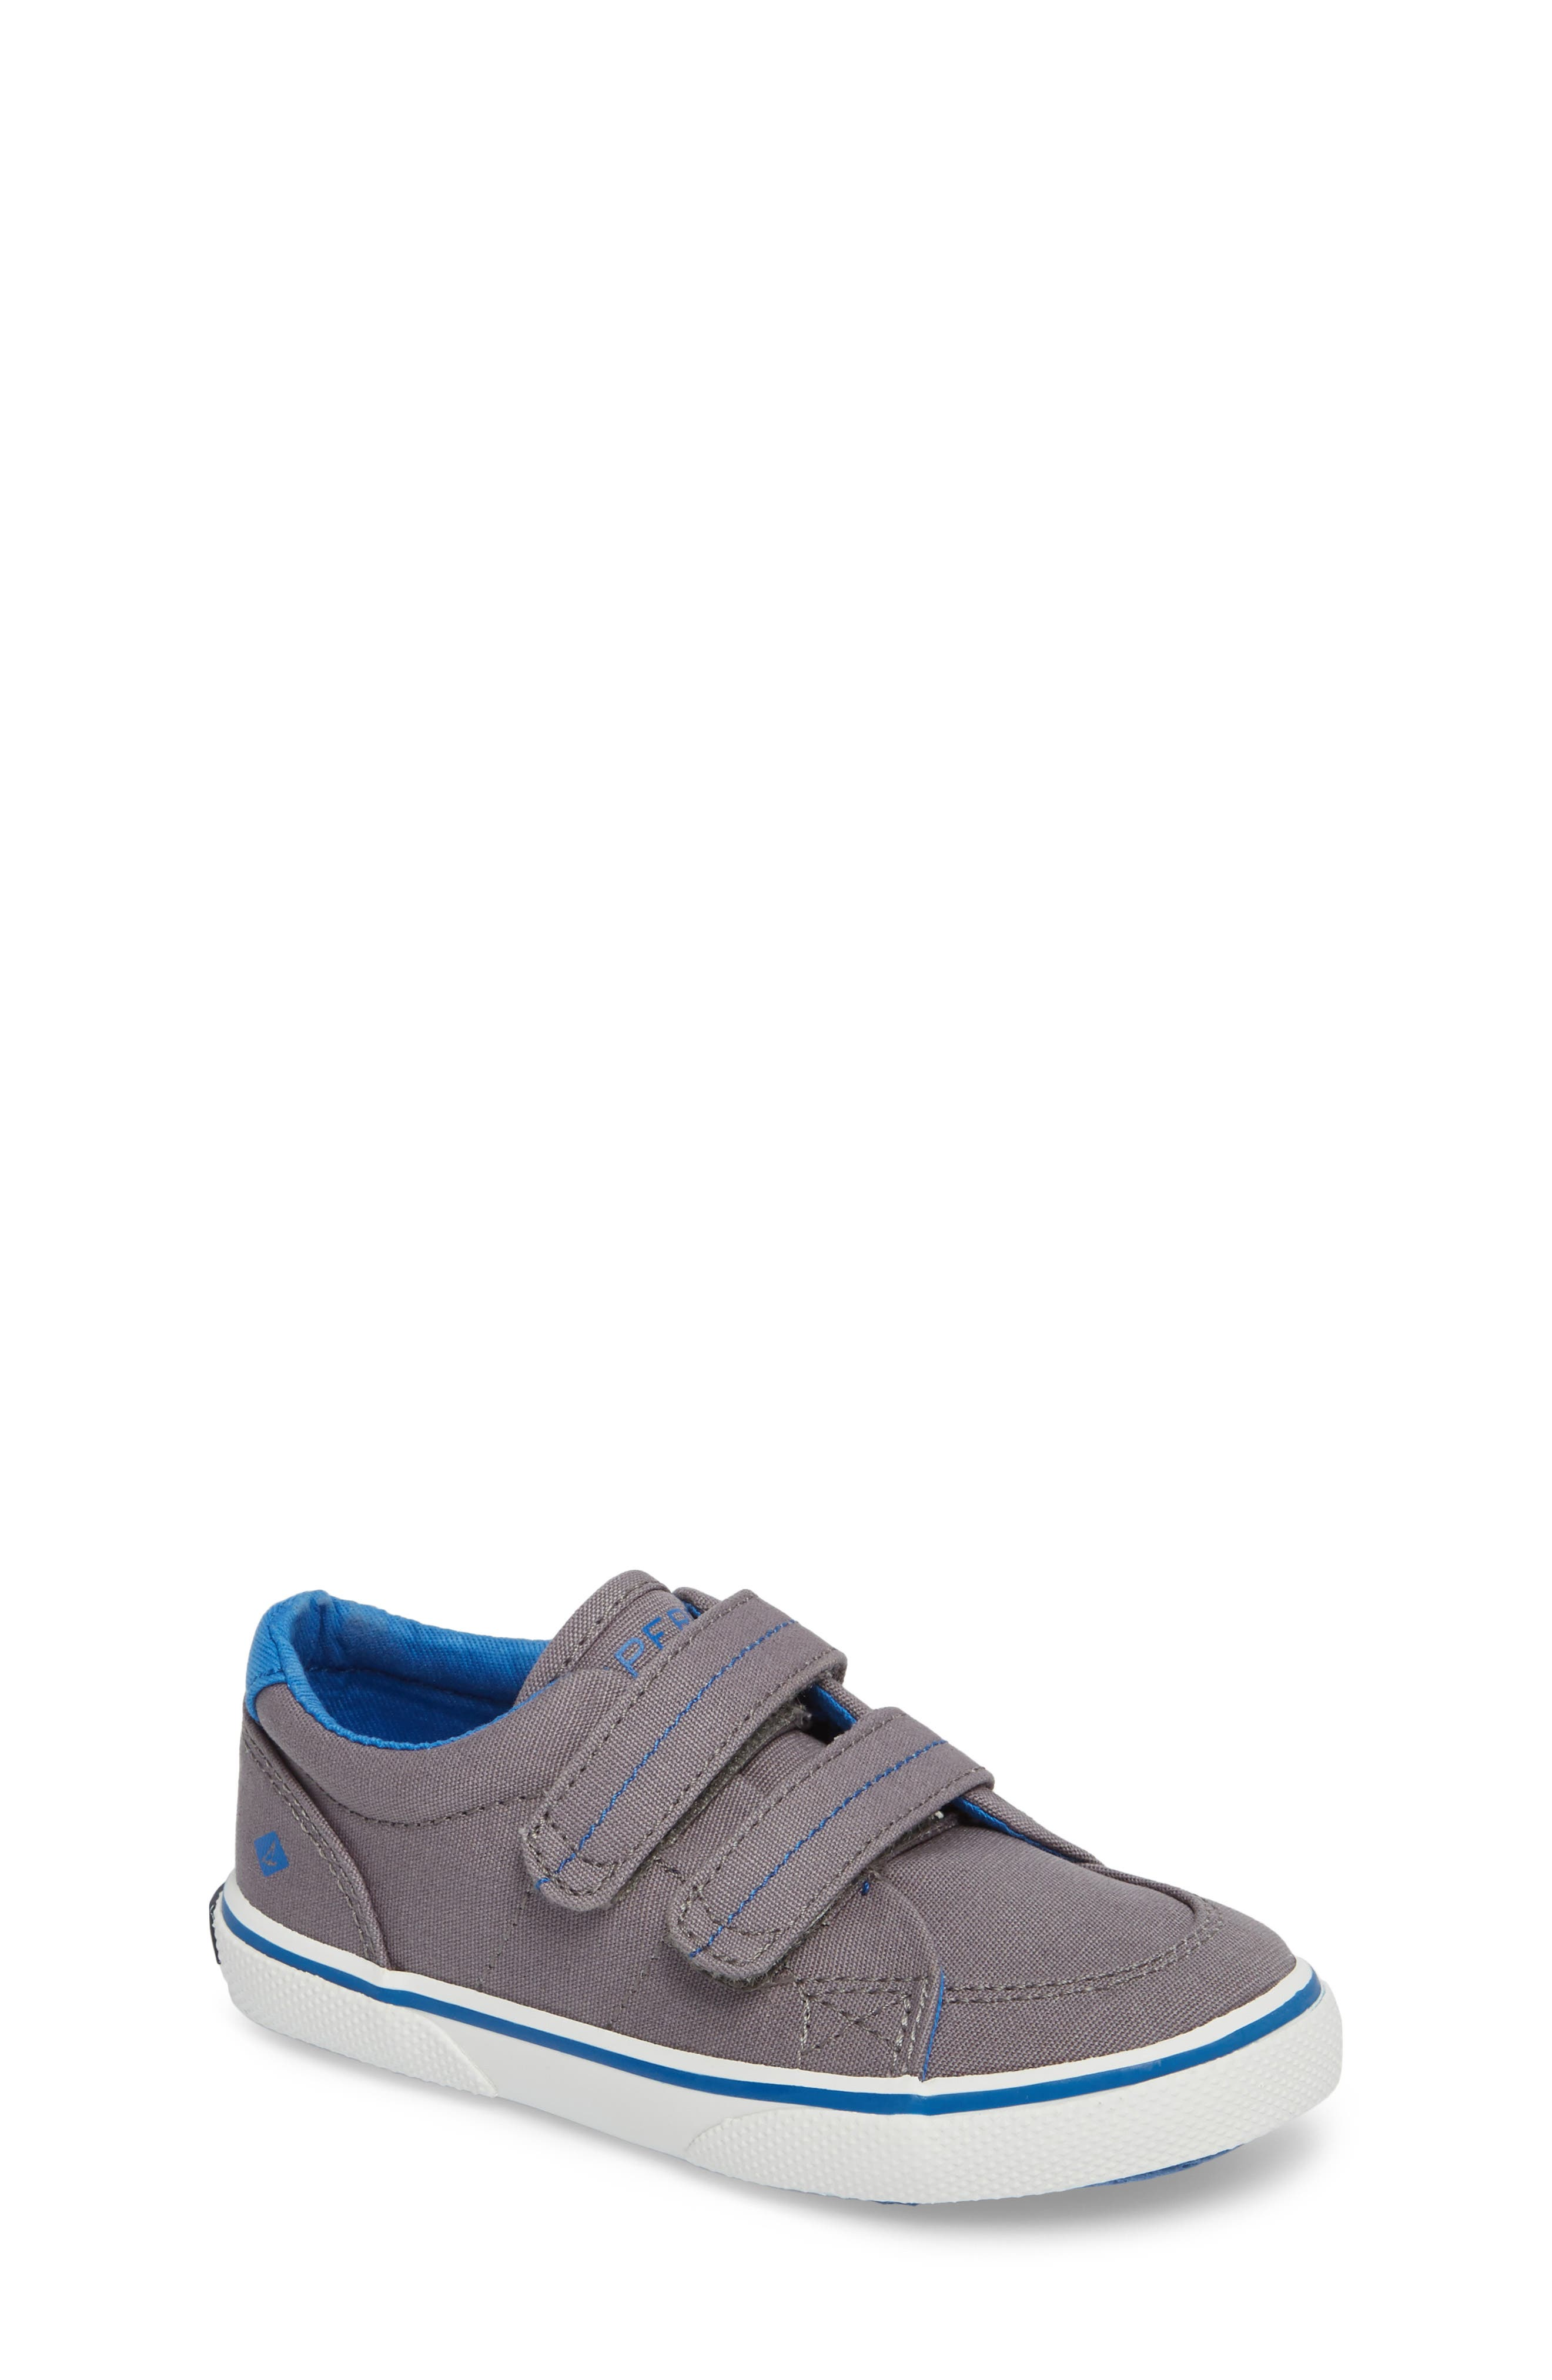 Sperry Top-Sider<sup>®</sup> Kids 'Halyard' Sneaker,                             Main thumbnail 1, color,                             020